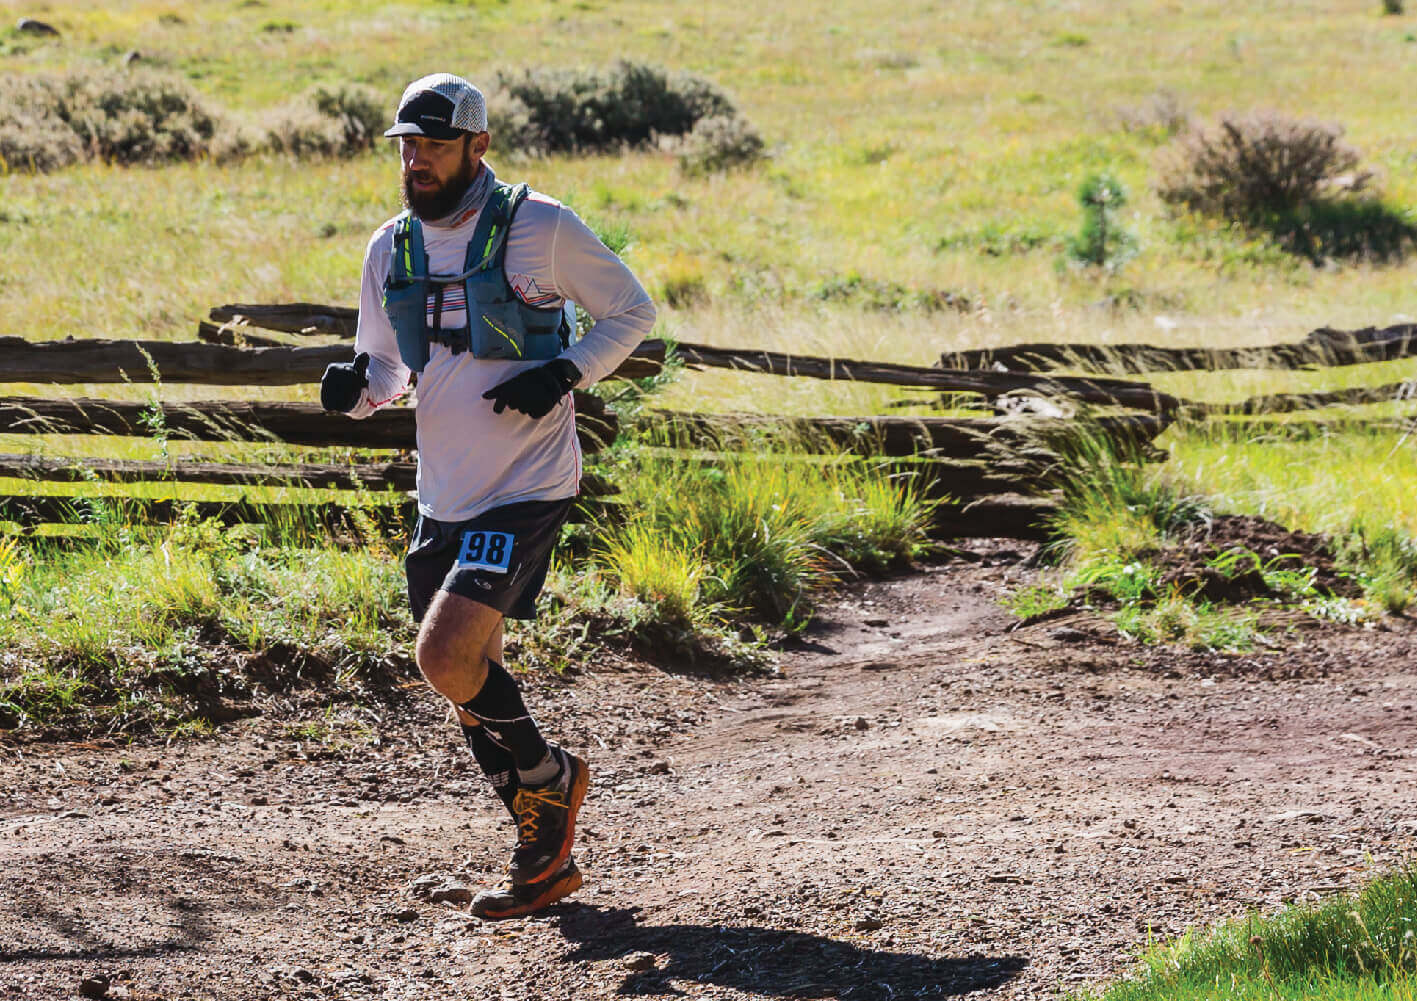 Spenco brand ambassador, Devon Ruse running mid-race on a natural trail